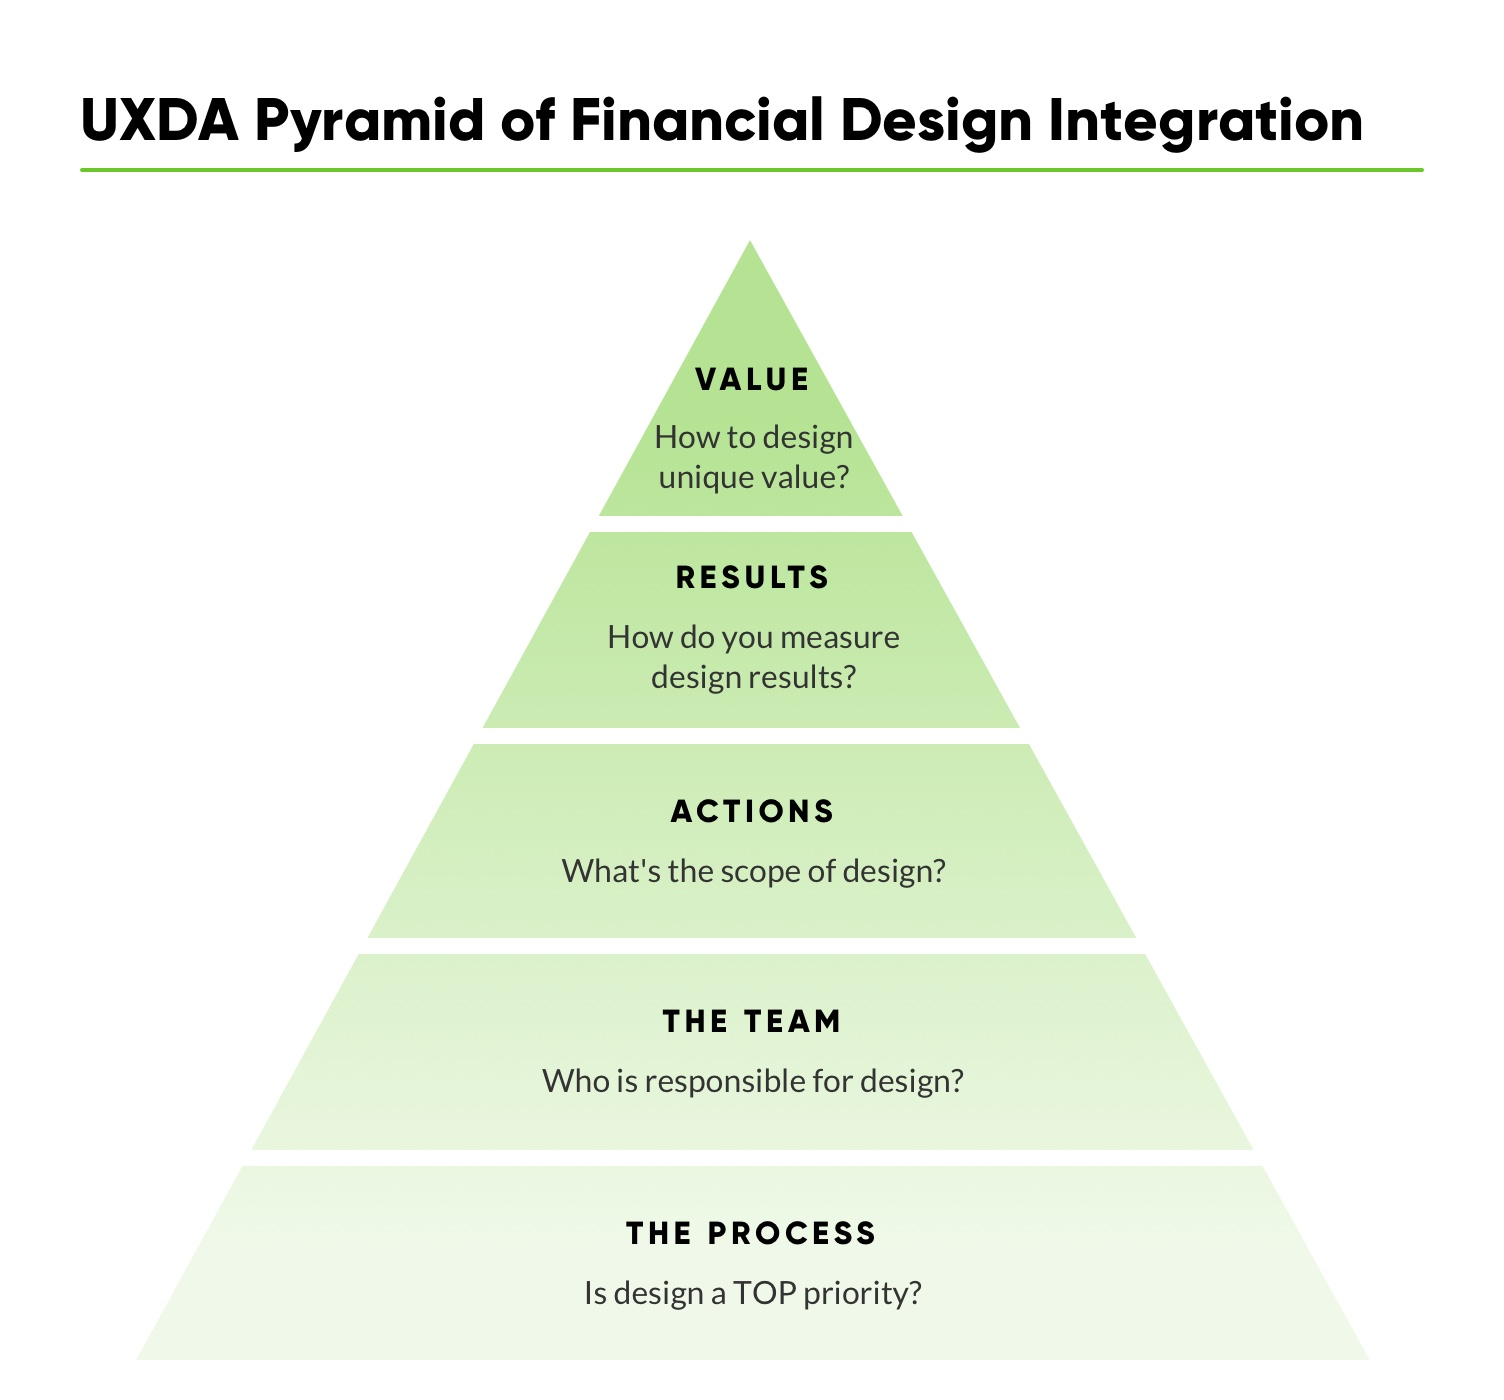 digital-banking-trends-ux-design-uxda-article-S-10.jpg